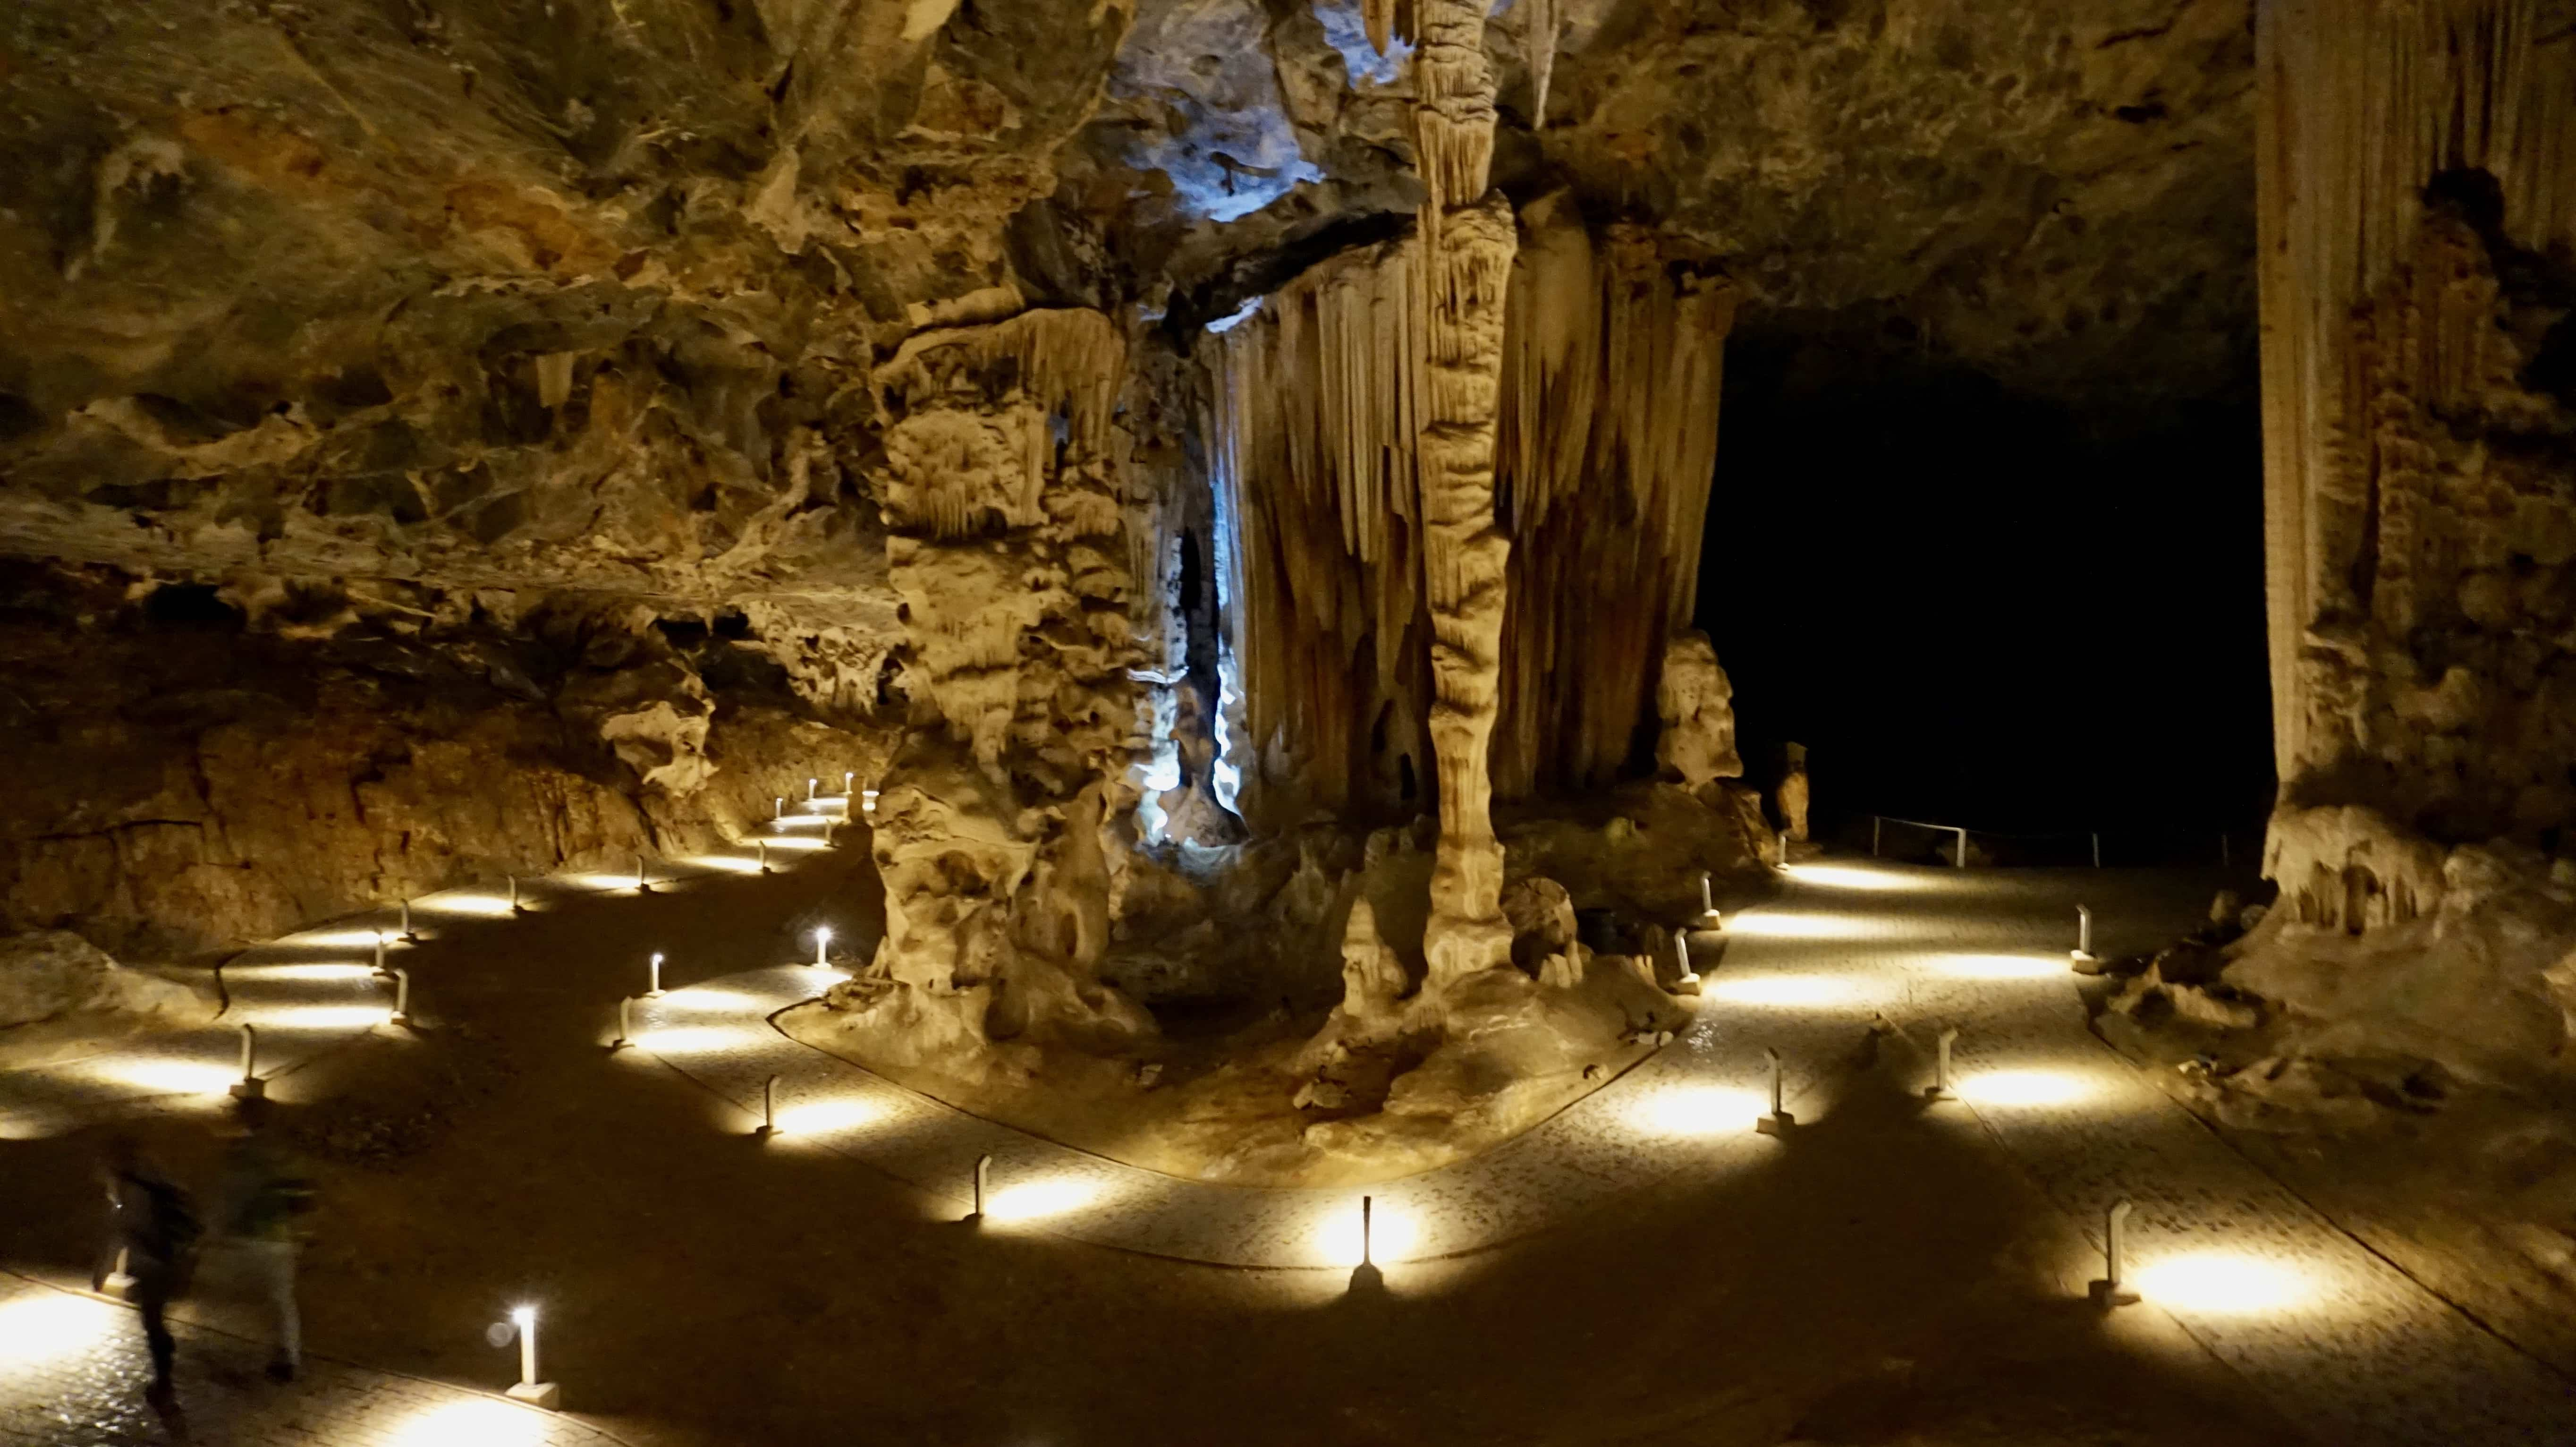 Inside the Cango Caves in Oudtshoorn, South Africa